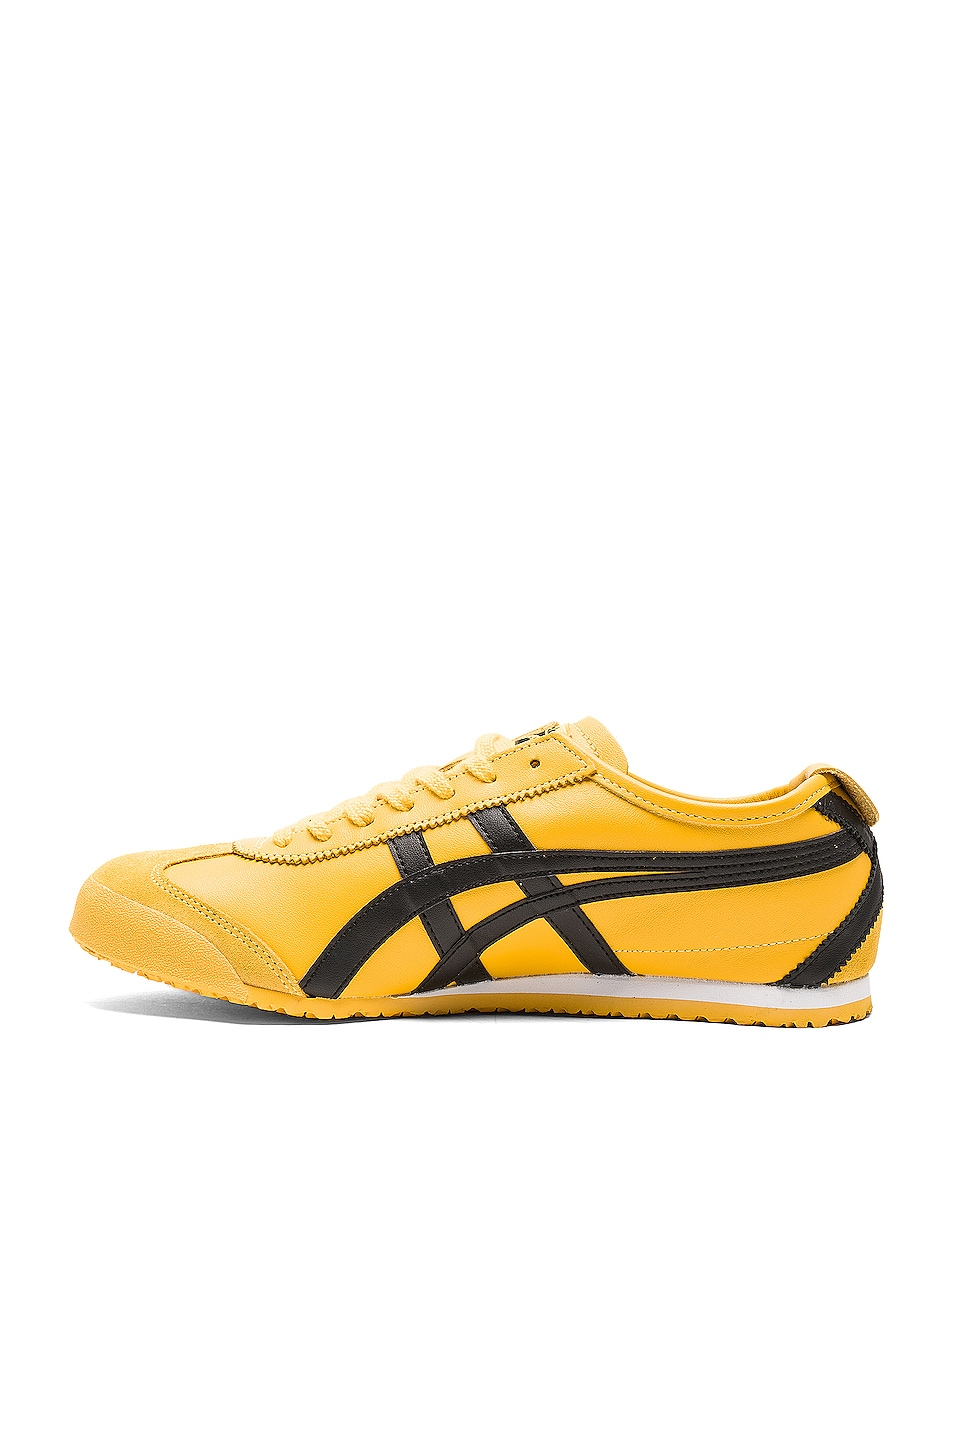 Image 5 of Onitsuka Tiger Mexico 66 in Yellow Black